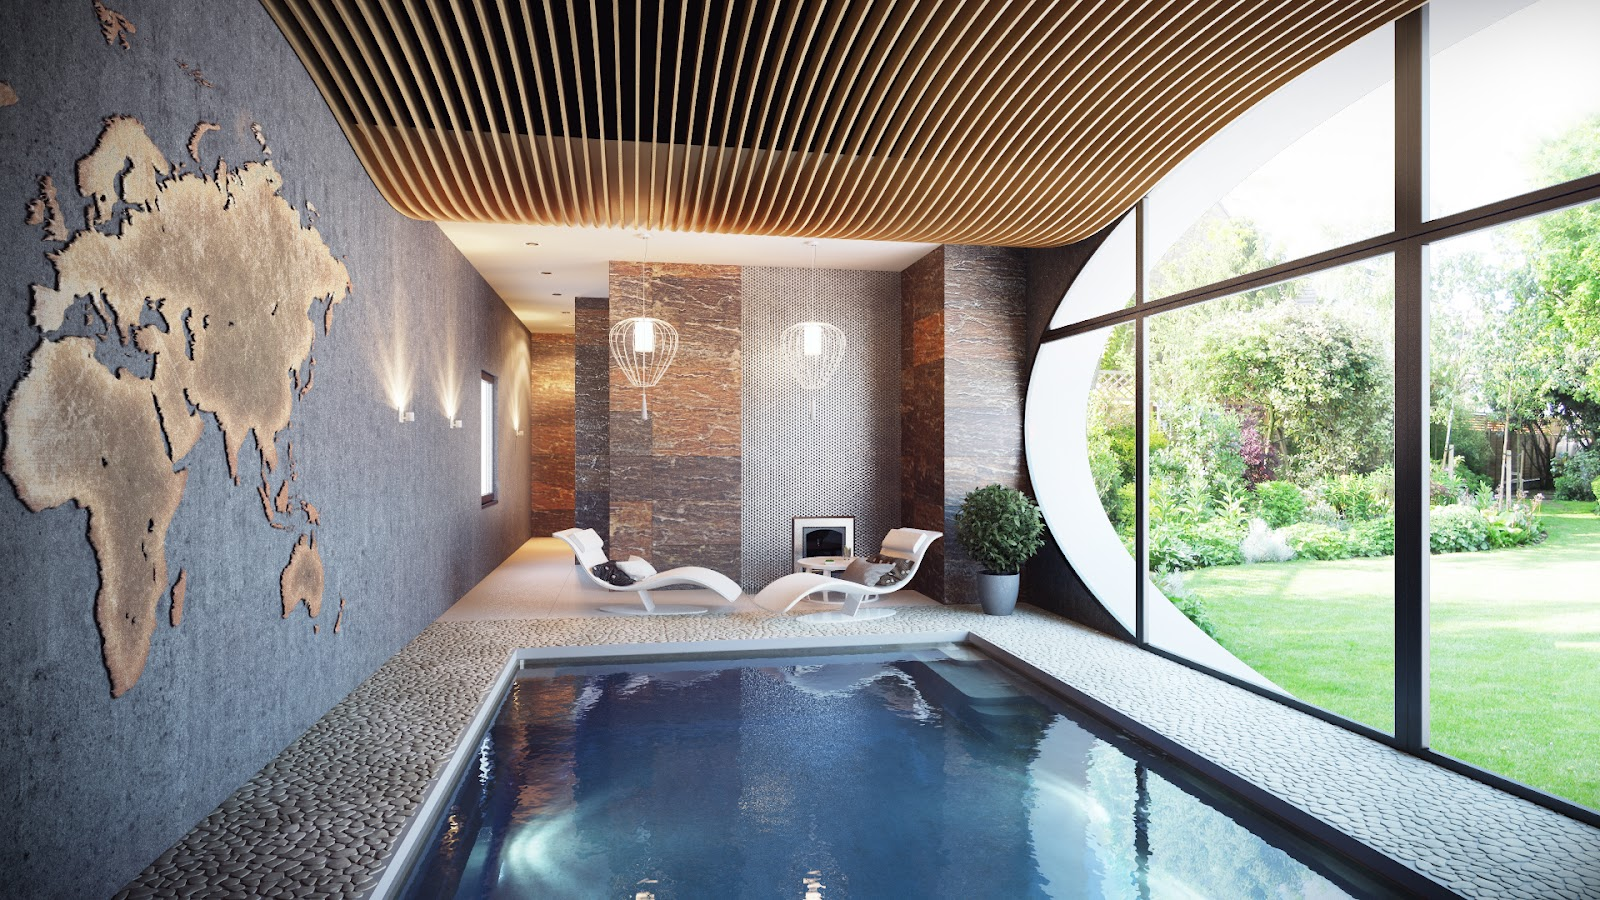 Indoor swimming pool interior design ideas for Hotel avec piscine interieur